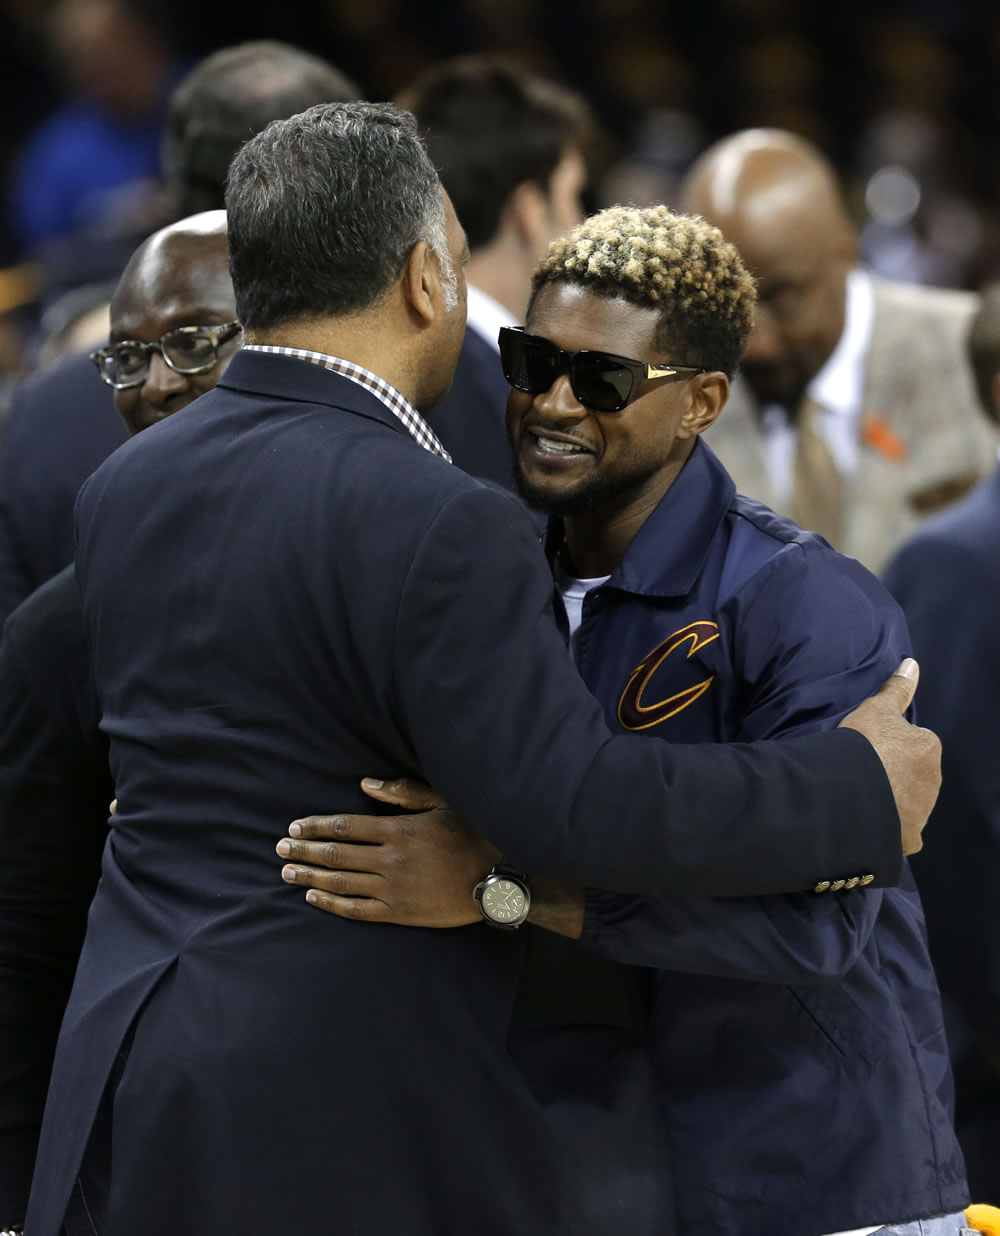 <div class='meta'><div class='origin-logo' data-origin='none'></div><span class='caption-text' data-credit='AP'>Usher greets the Reverand Jesse Jackson at Quicken Loans Arena during game three of the NBA Finals in Cleveland, Ohio on June 7, 2017.</span></div>